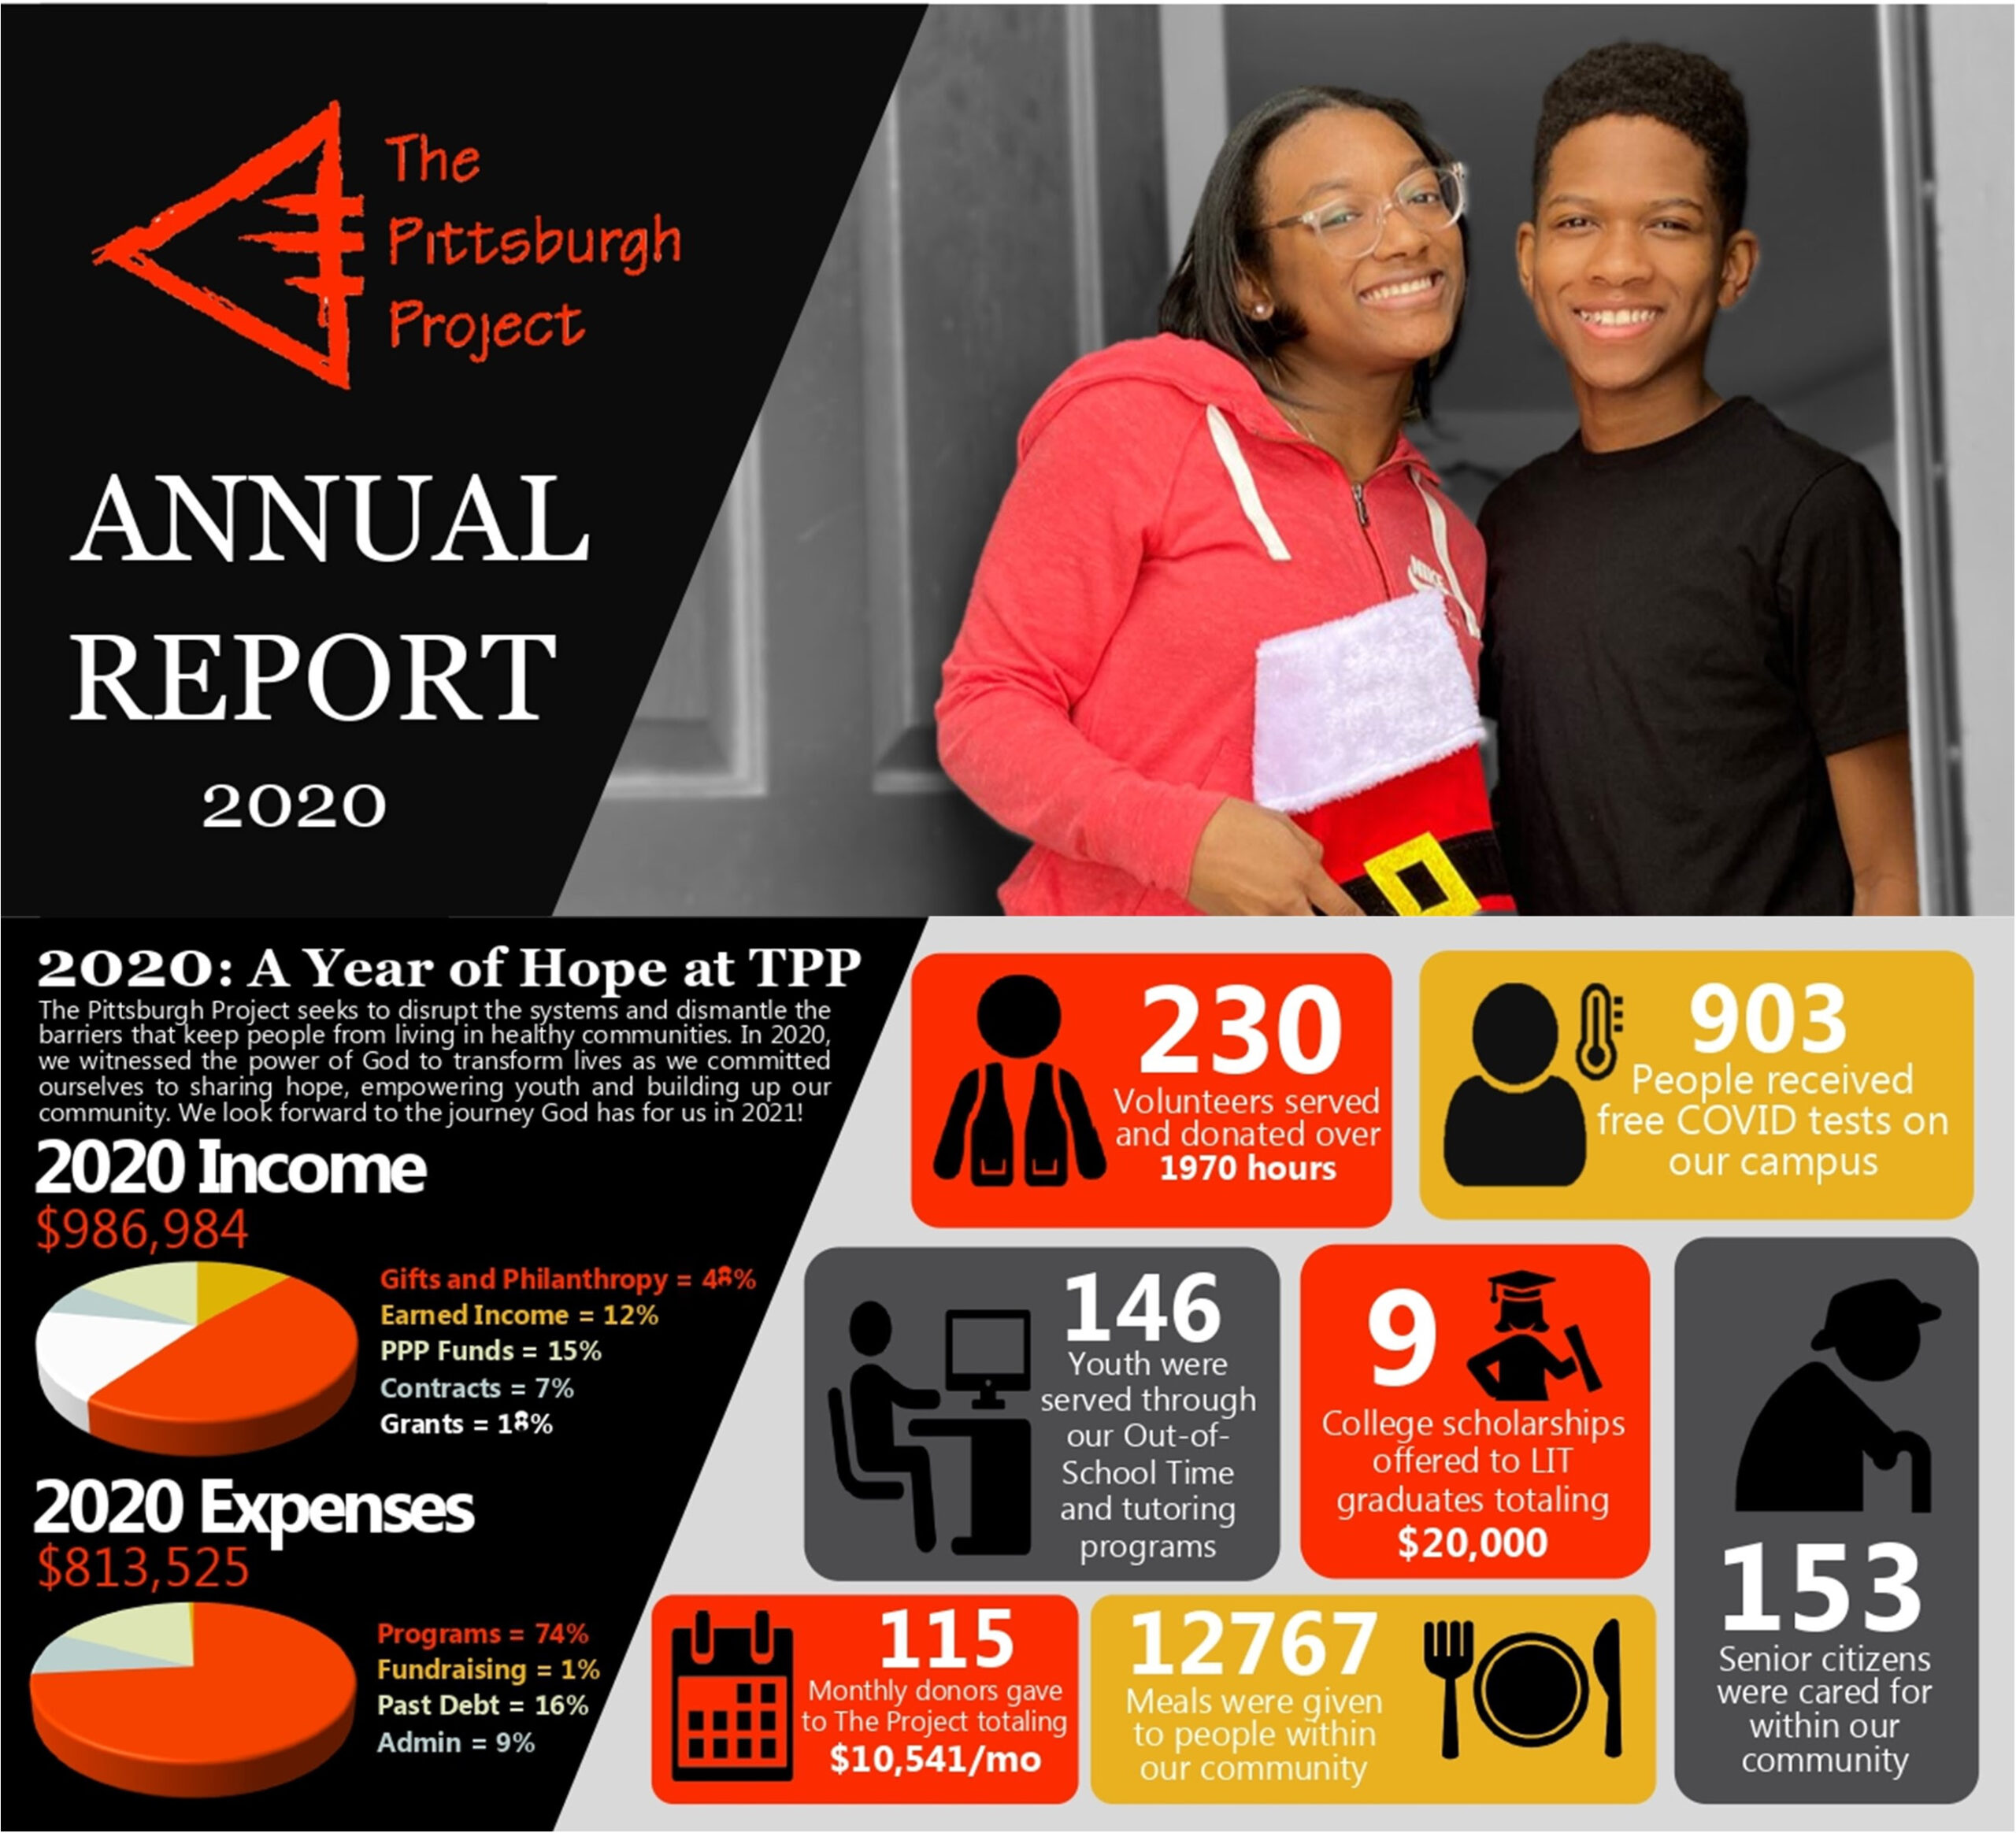 The Pittsburgh Project annual report infographic for 2020